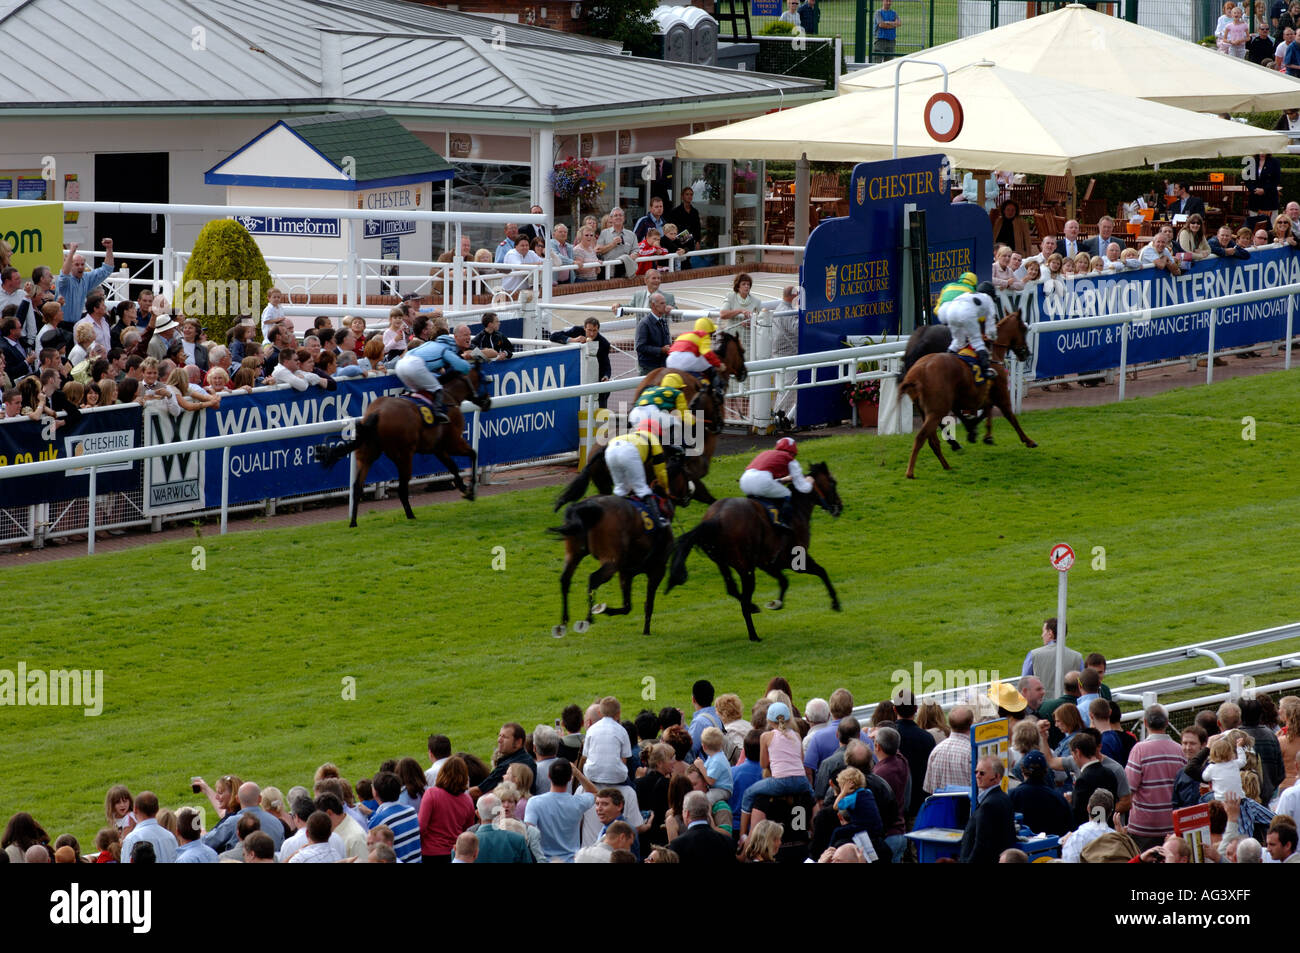 Racehorses at Chester Race meeting England UK July 2005 - Stock Image